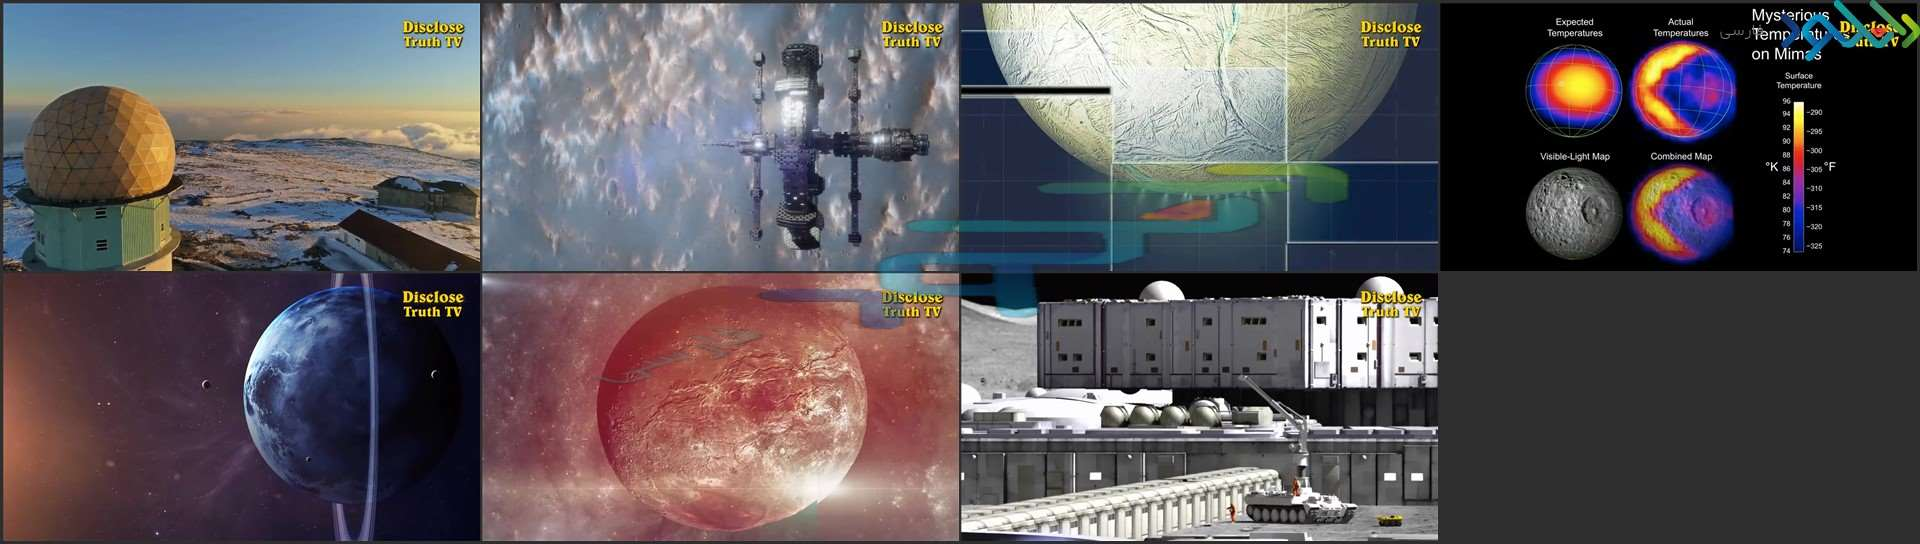 www.download.ir.New.Moon.Bases.Documentary.2019.Colonisation.of.the.Solar.Systems.Strangest.Places.mp4